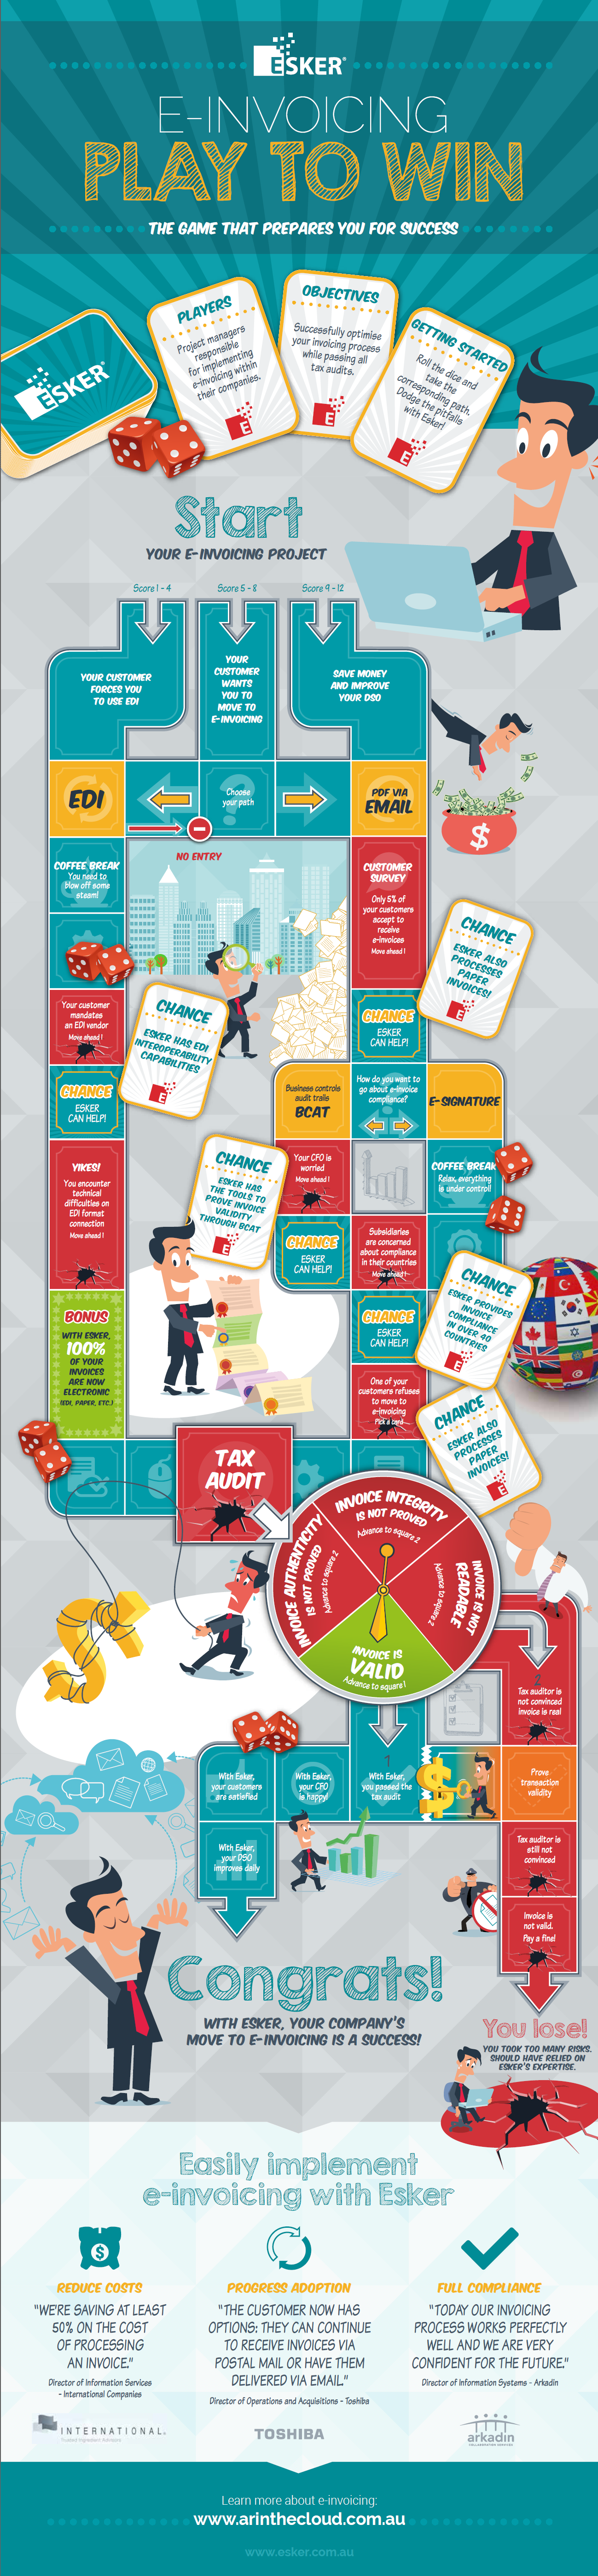 esker electronic invoicing board game infographic full